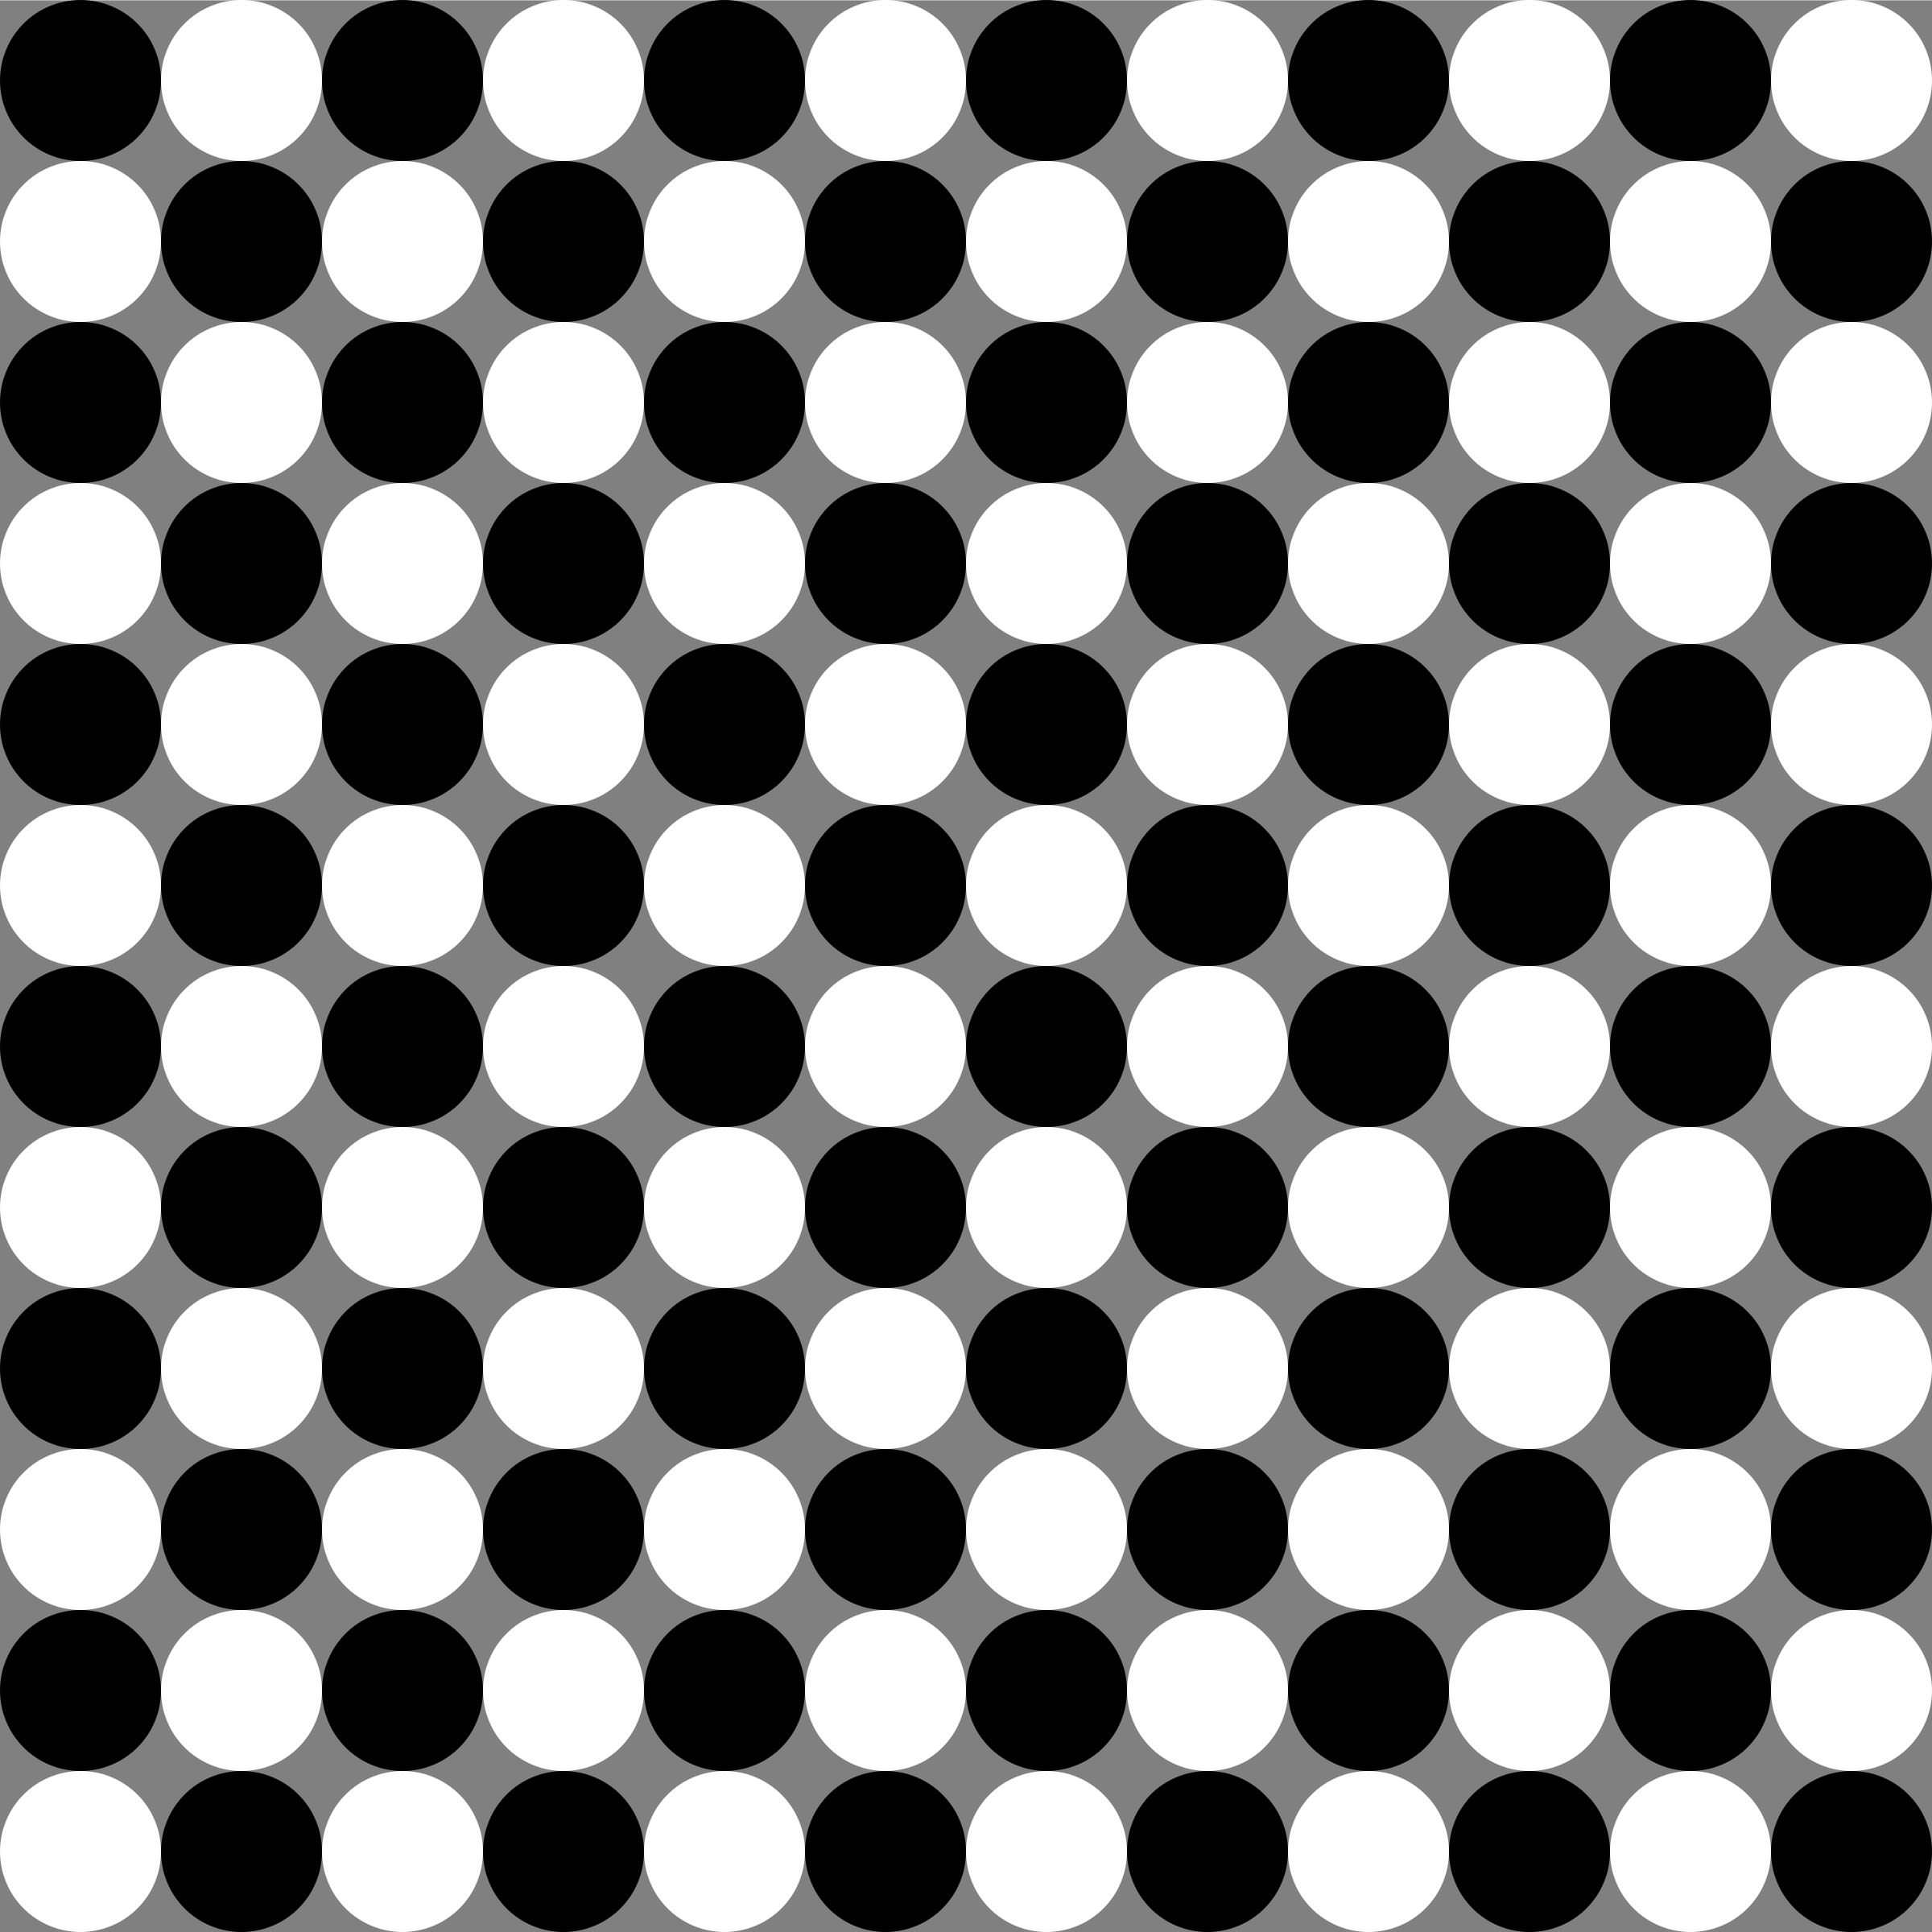 circles chessboard by 10binary